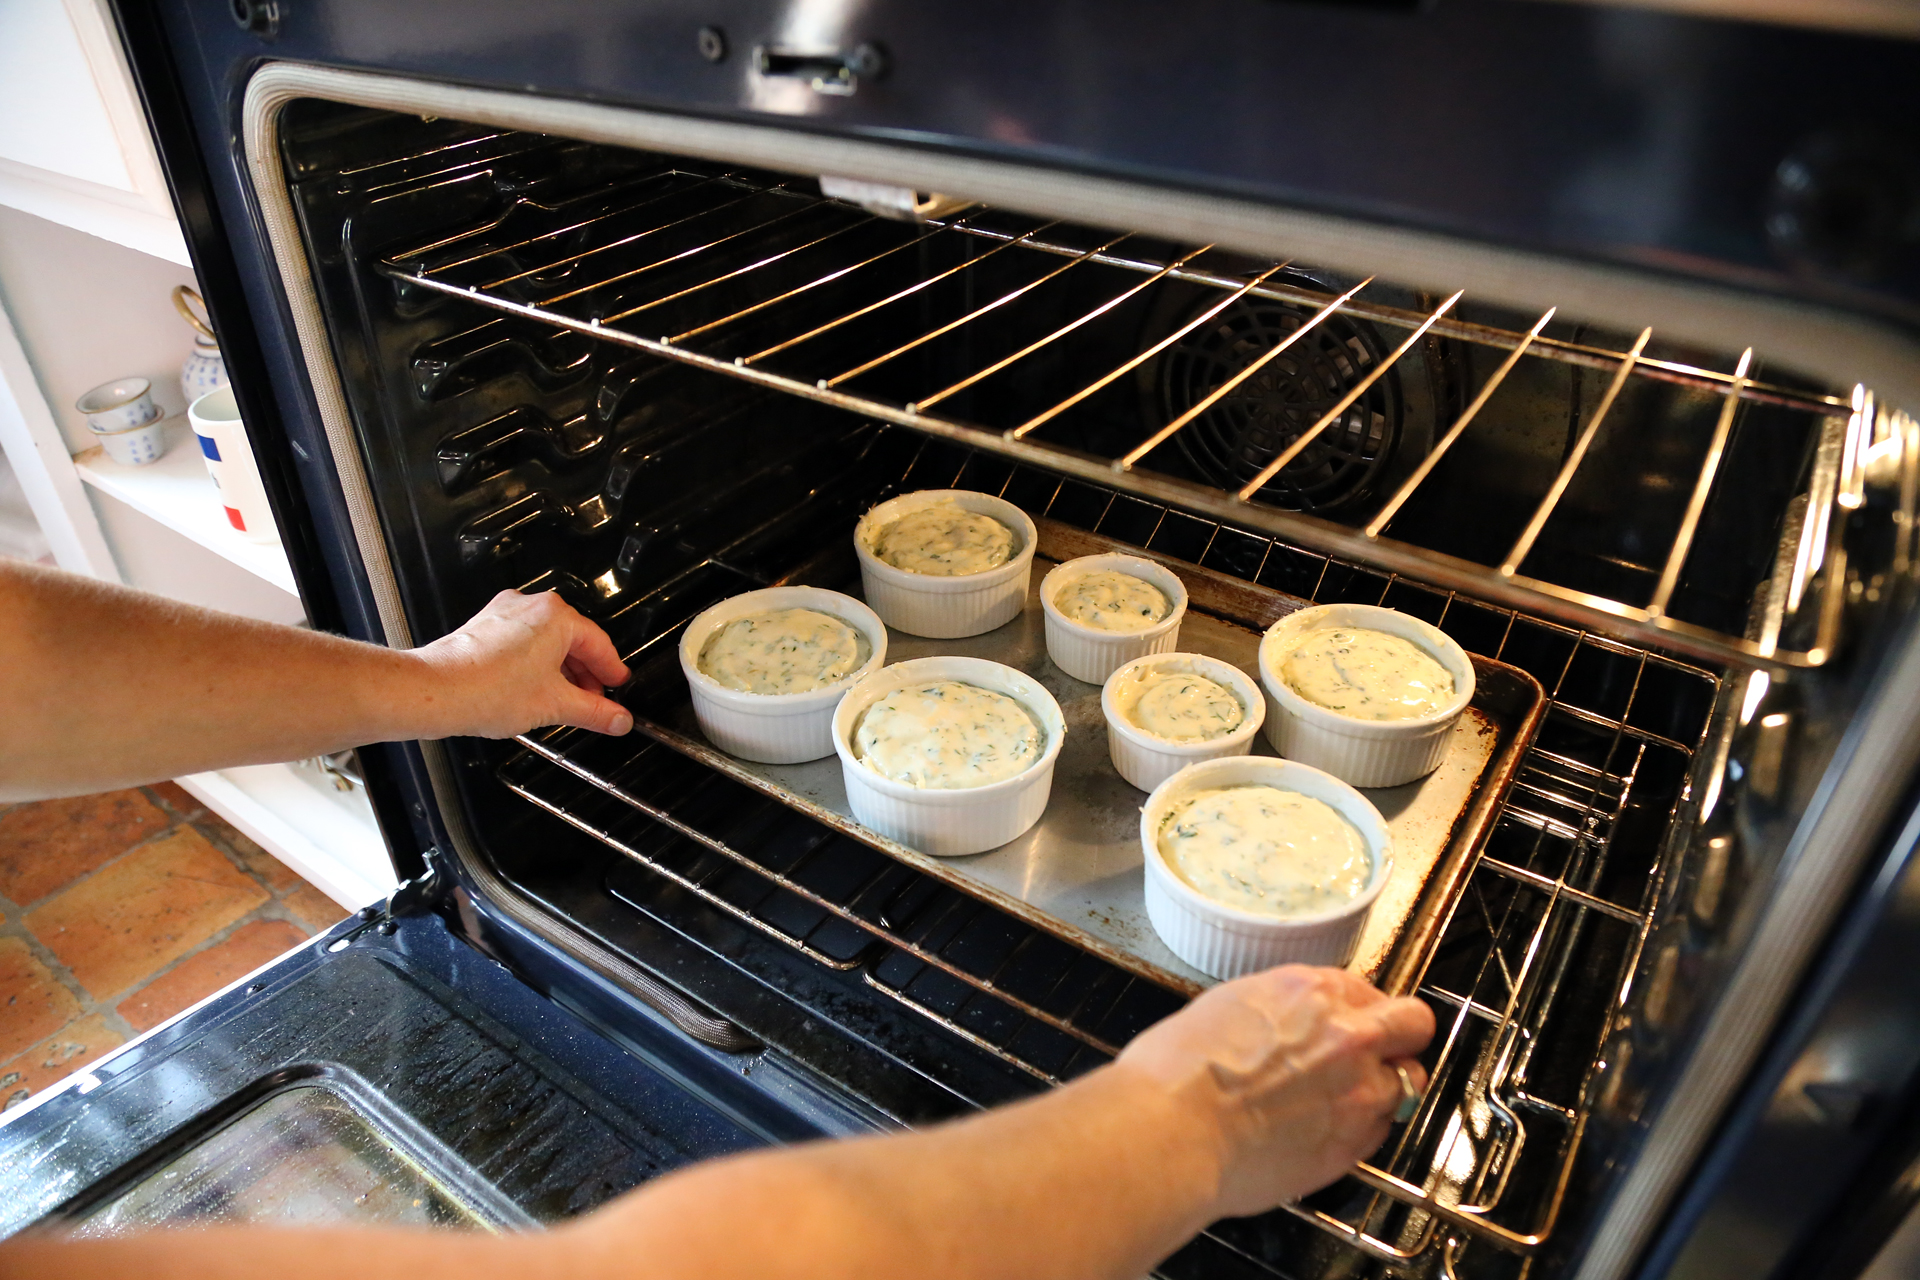 Bake until the soufflés are puffed and browned and the center still jiggles when the dish is gently shaken, about 20 minutes. Do not open the oven door during cooking.